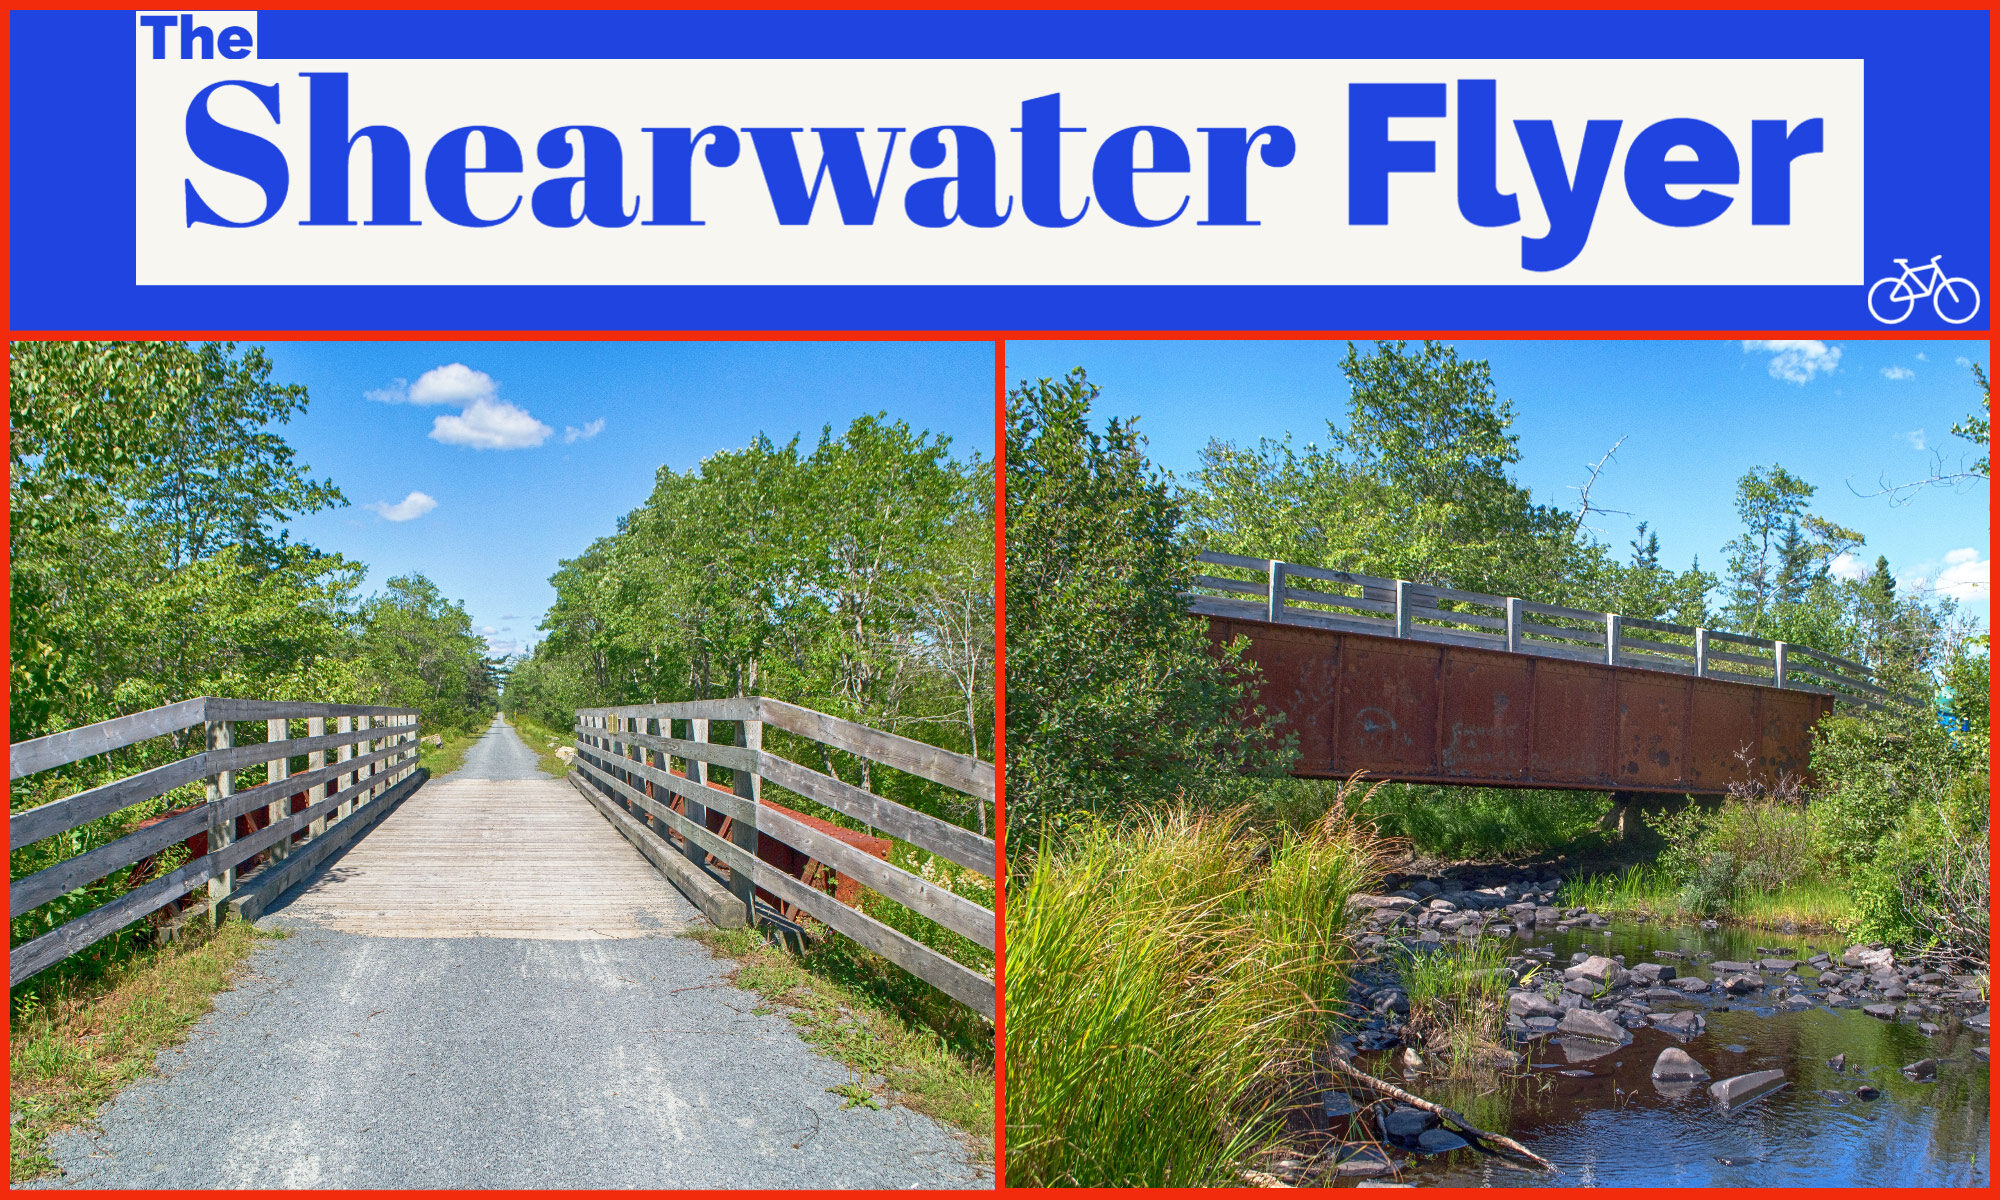 The Shearwater Flyer Trail